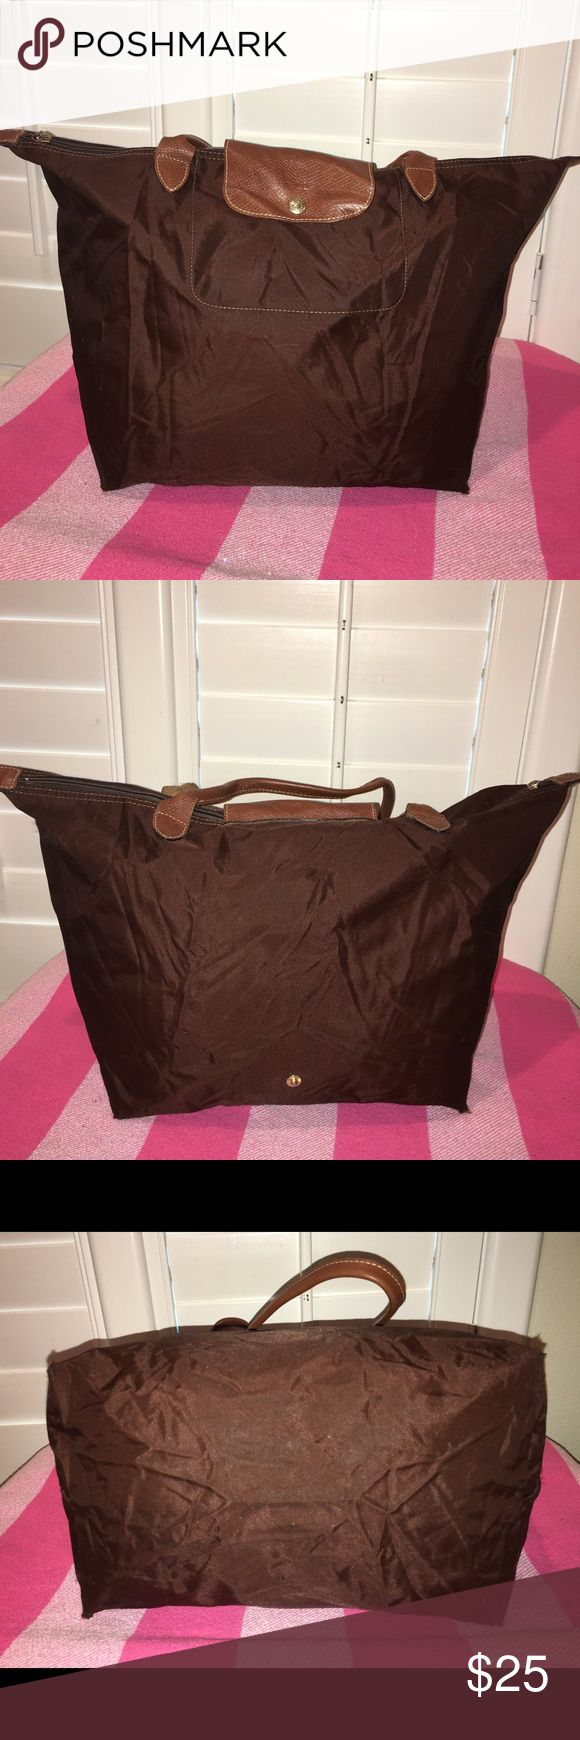 Longchamp Le Pliage Nylone Tote Handbag handbag in Nylon and leather, is used has wear, marks, inside and outside, does not bring zipper logo,h as the four corners with scrap very common in this type of bags, (see photos), you need to send compose, sold as is, its sale is final, that's why its low price, it's not new it's used to see very well each and every one of the photos please thank you Longchamp Bags Hobos